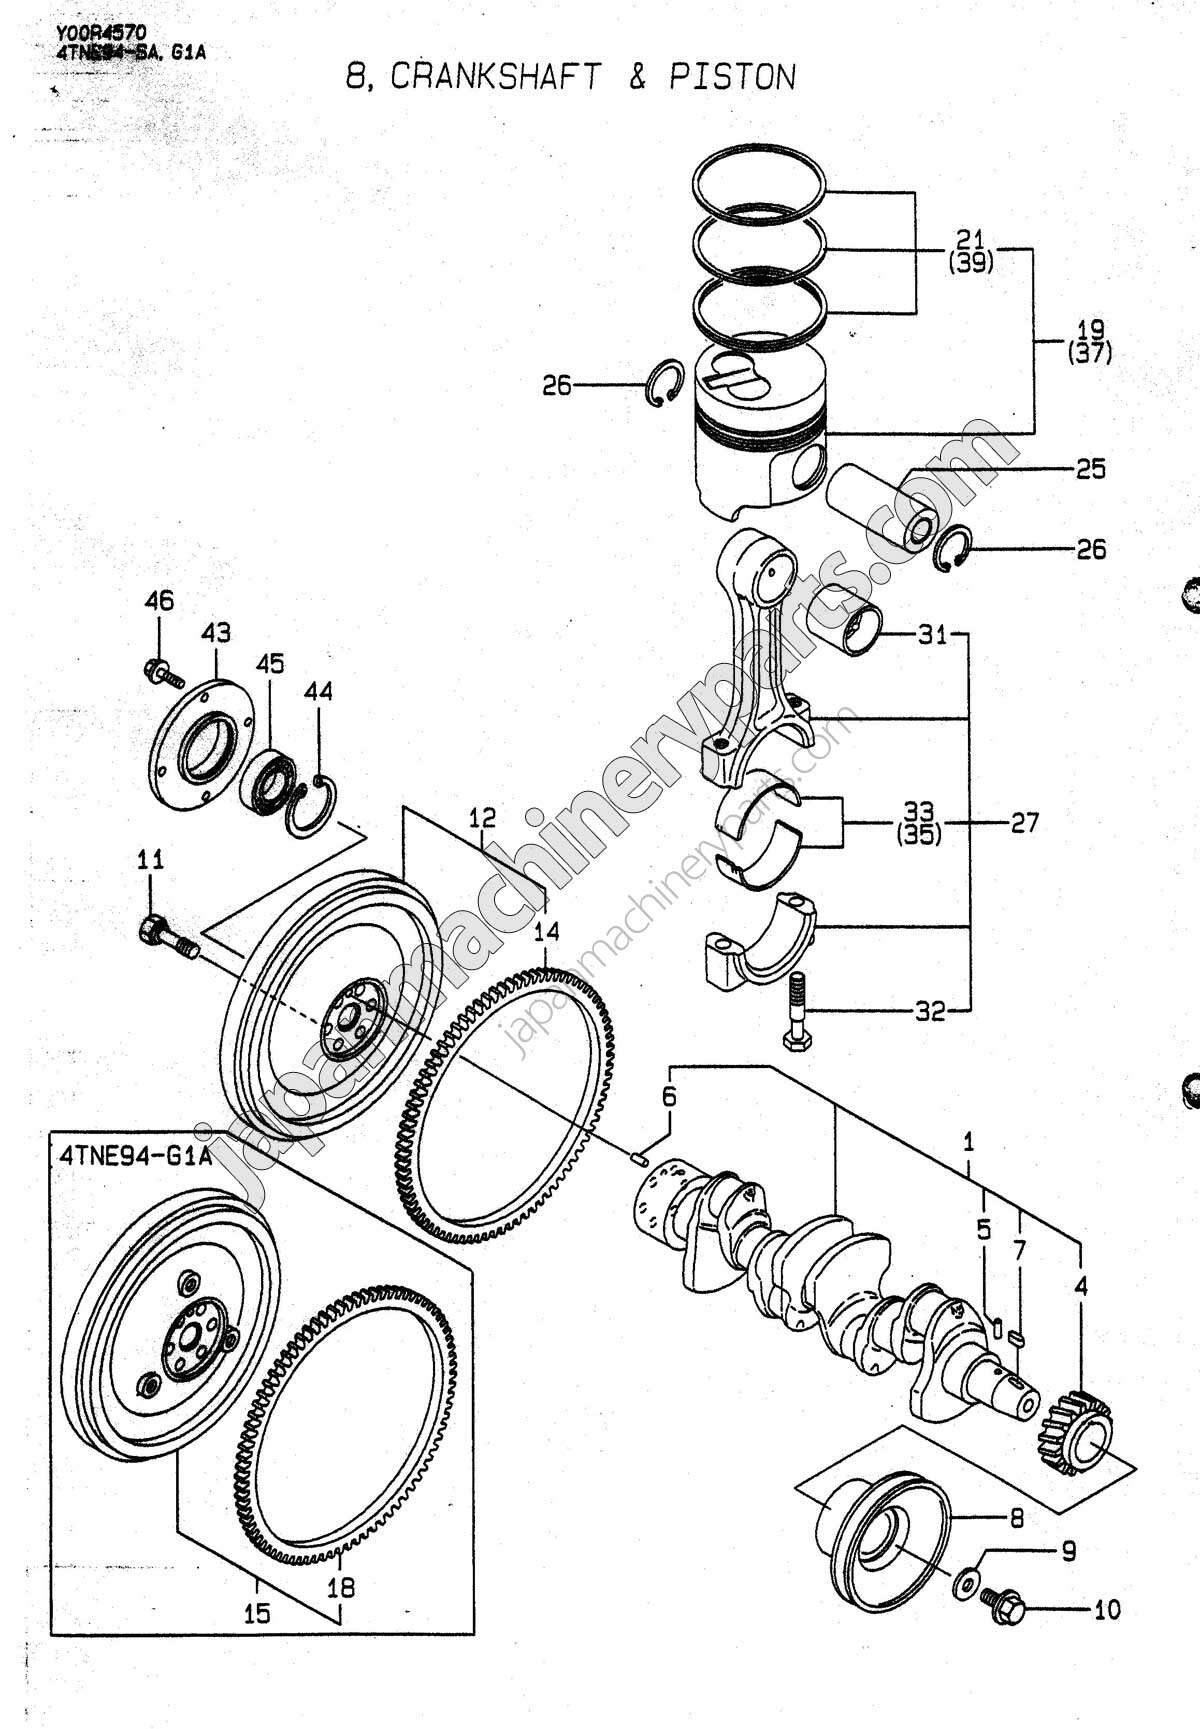 Engine Parts And Functions